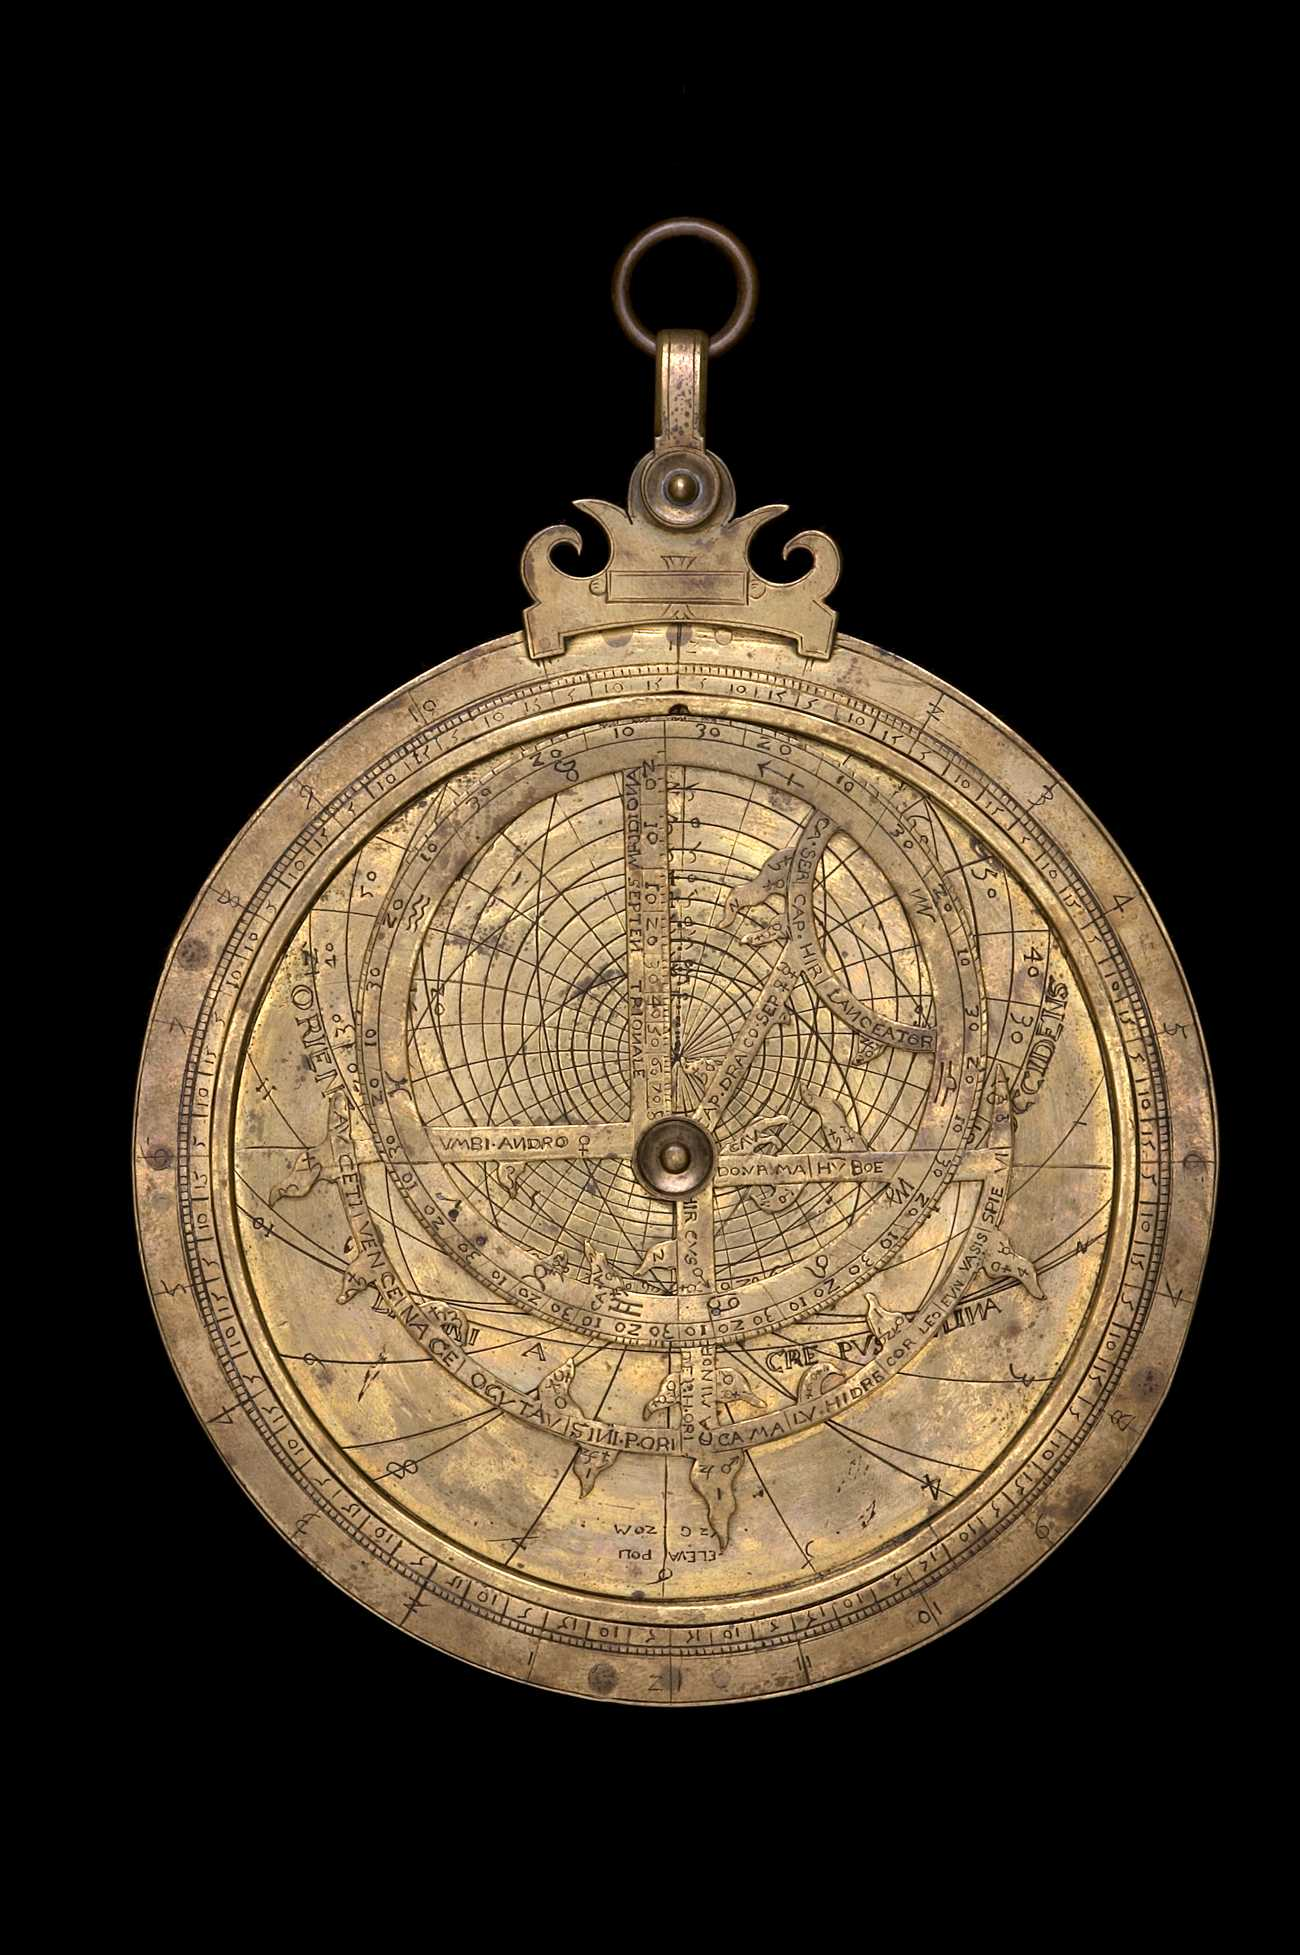 Astrolabe Image Report Inventory Number 52473: Astrolabe Image Report (inventory Number 39887